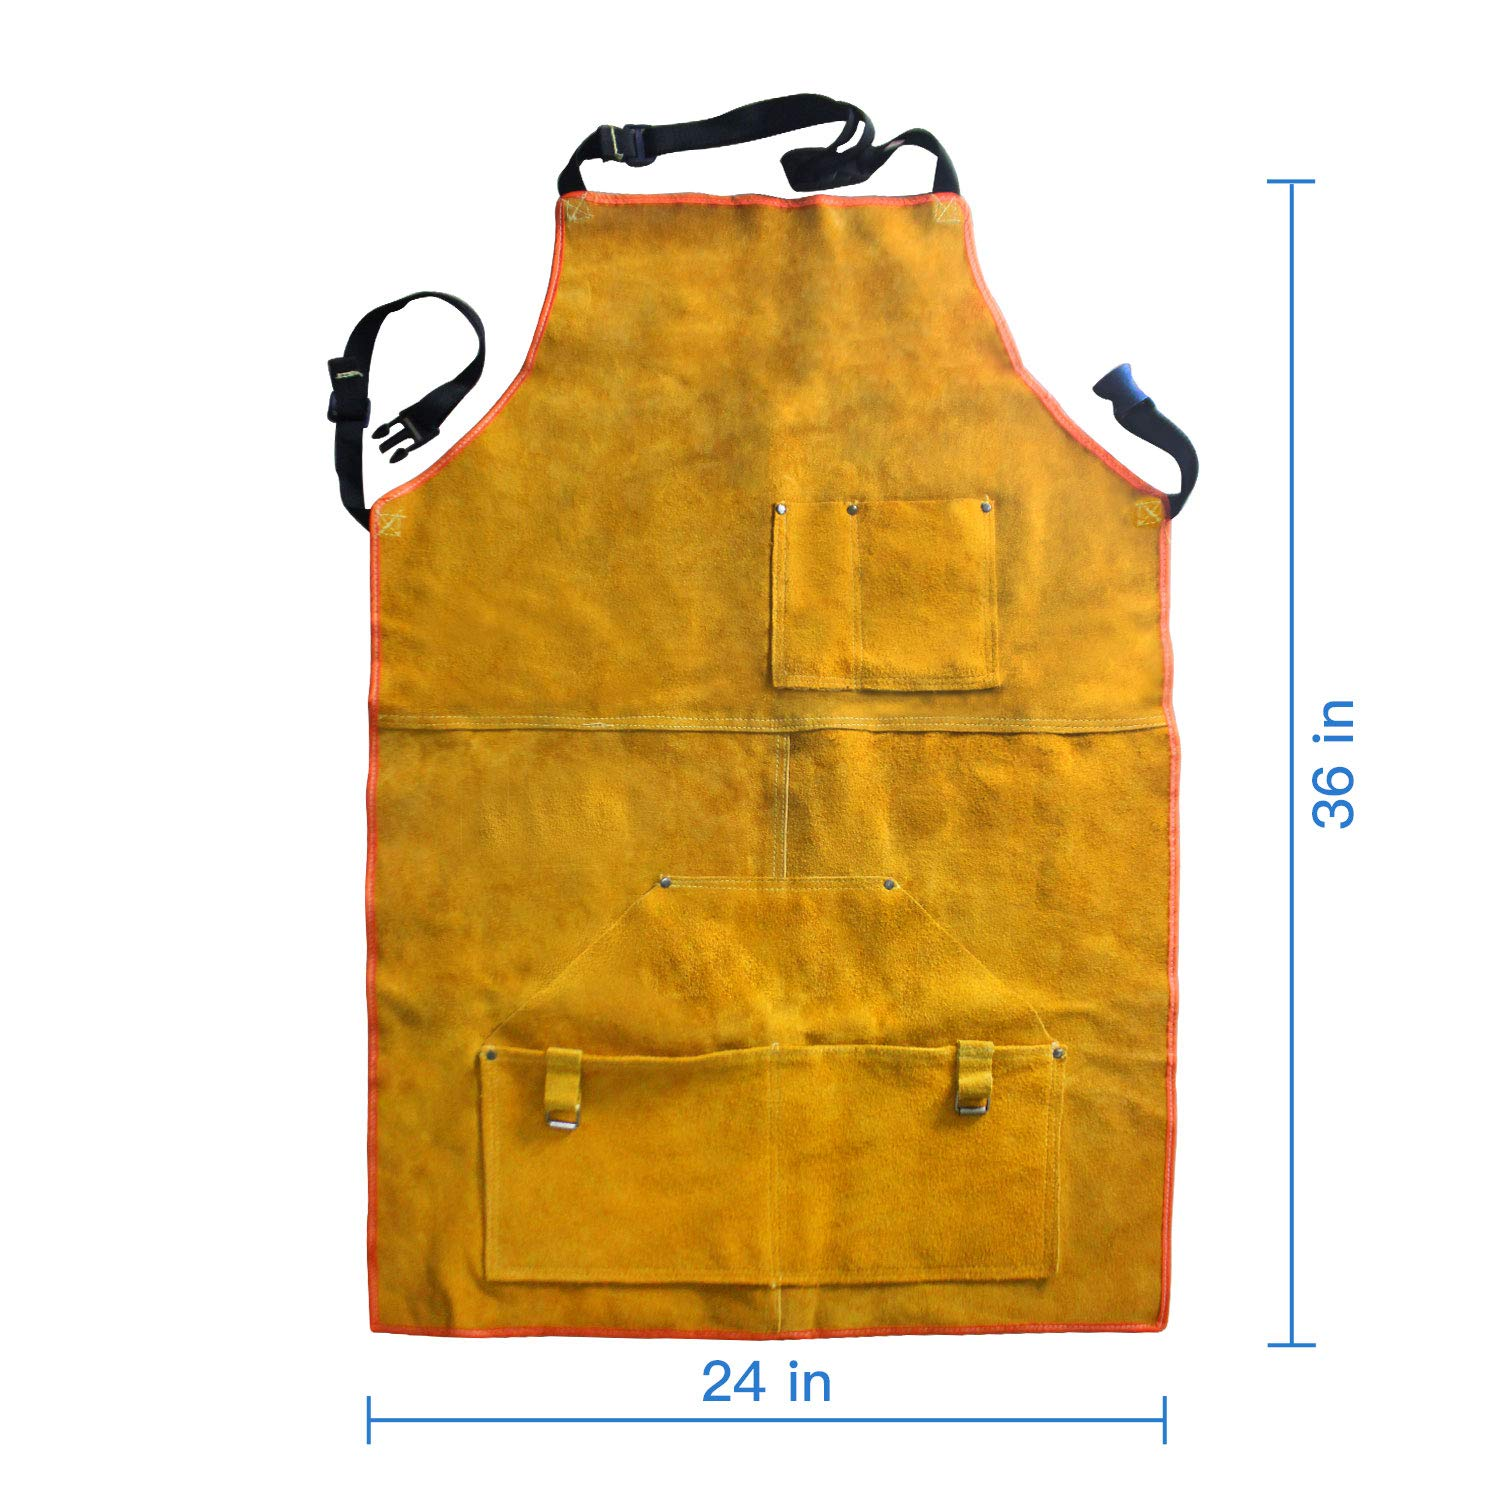 Leather Welding Apron Flame-Resistant Heat Resistant Work Apron Fire Resistant Welding/Welder Smock, 24 x 36 Inch, 6 Pockets by Handook (Image #7)